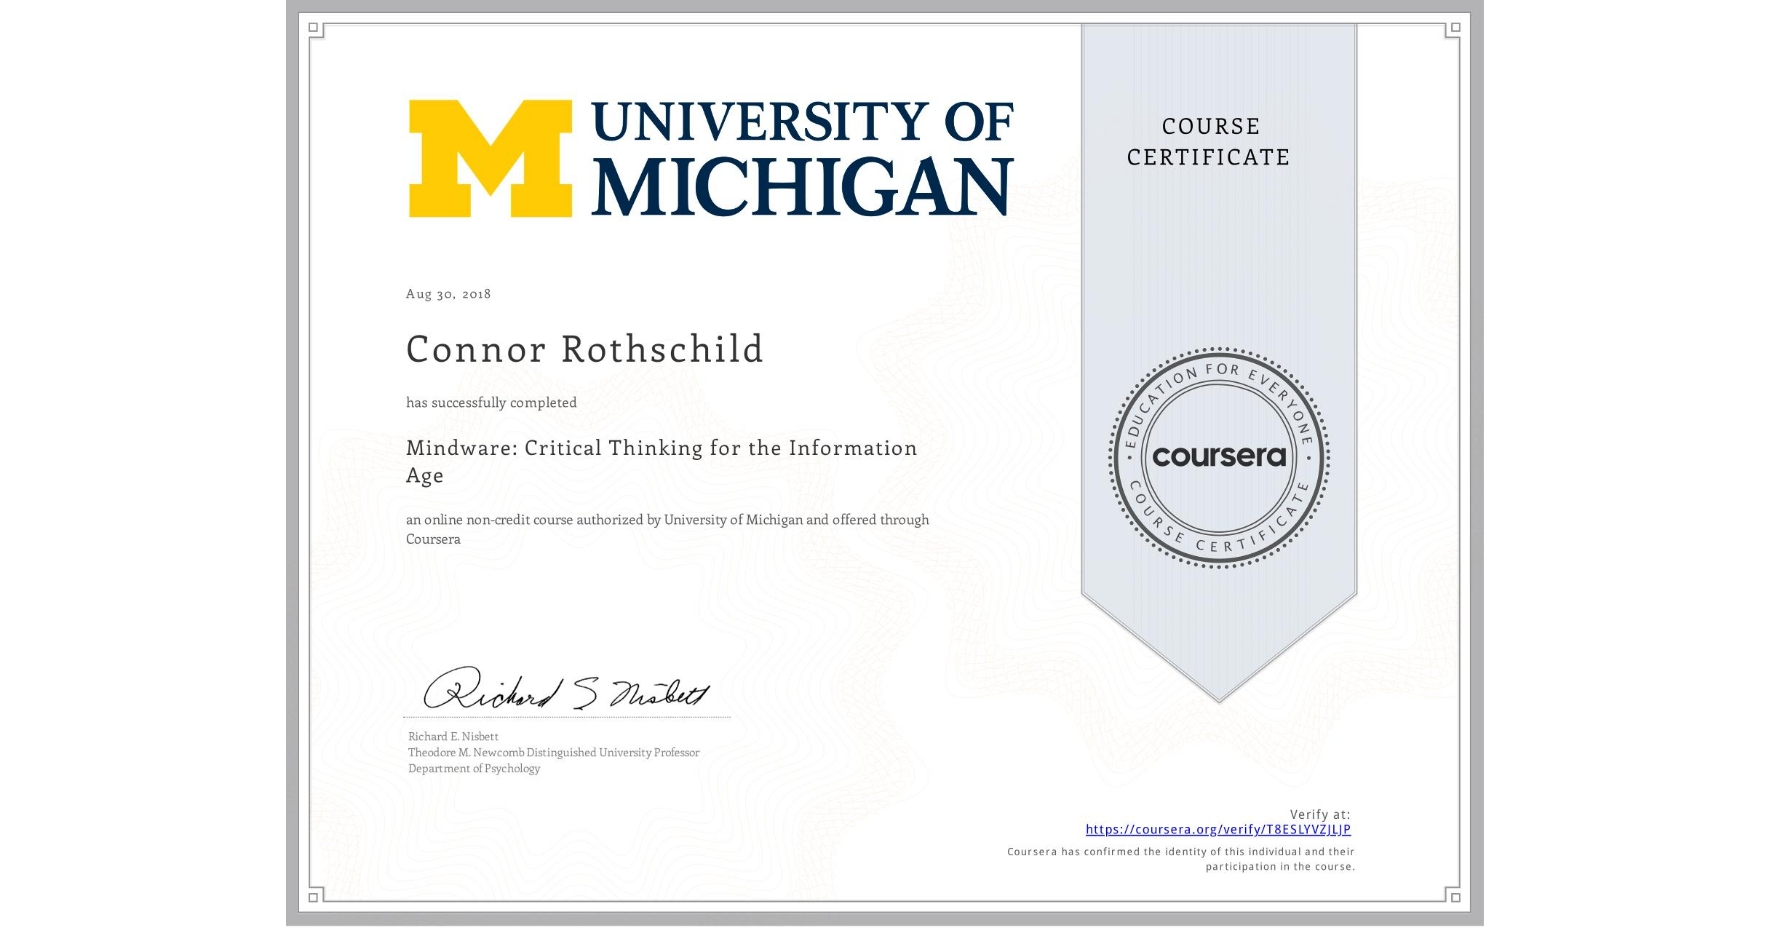 View certificate for Connor Rothschild, Mindware: Critical Thinking for the Information Age , an online non-credit course authorized by University of Michigan and offered through Coursera